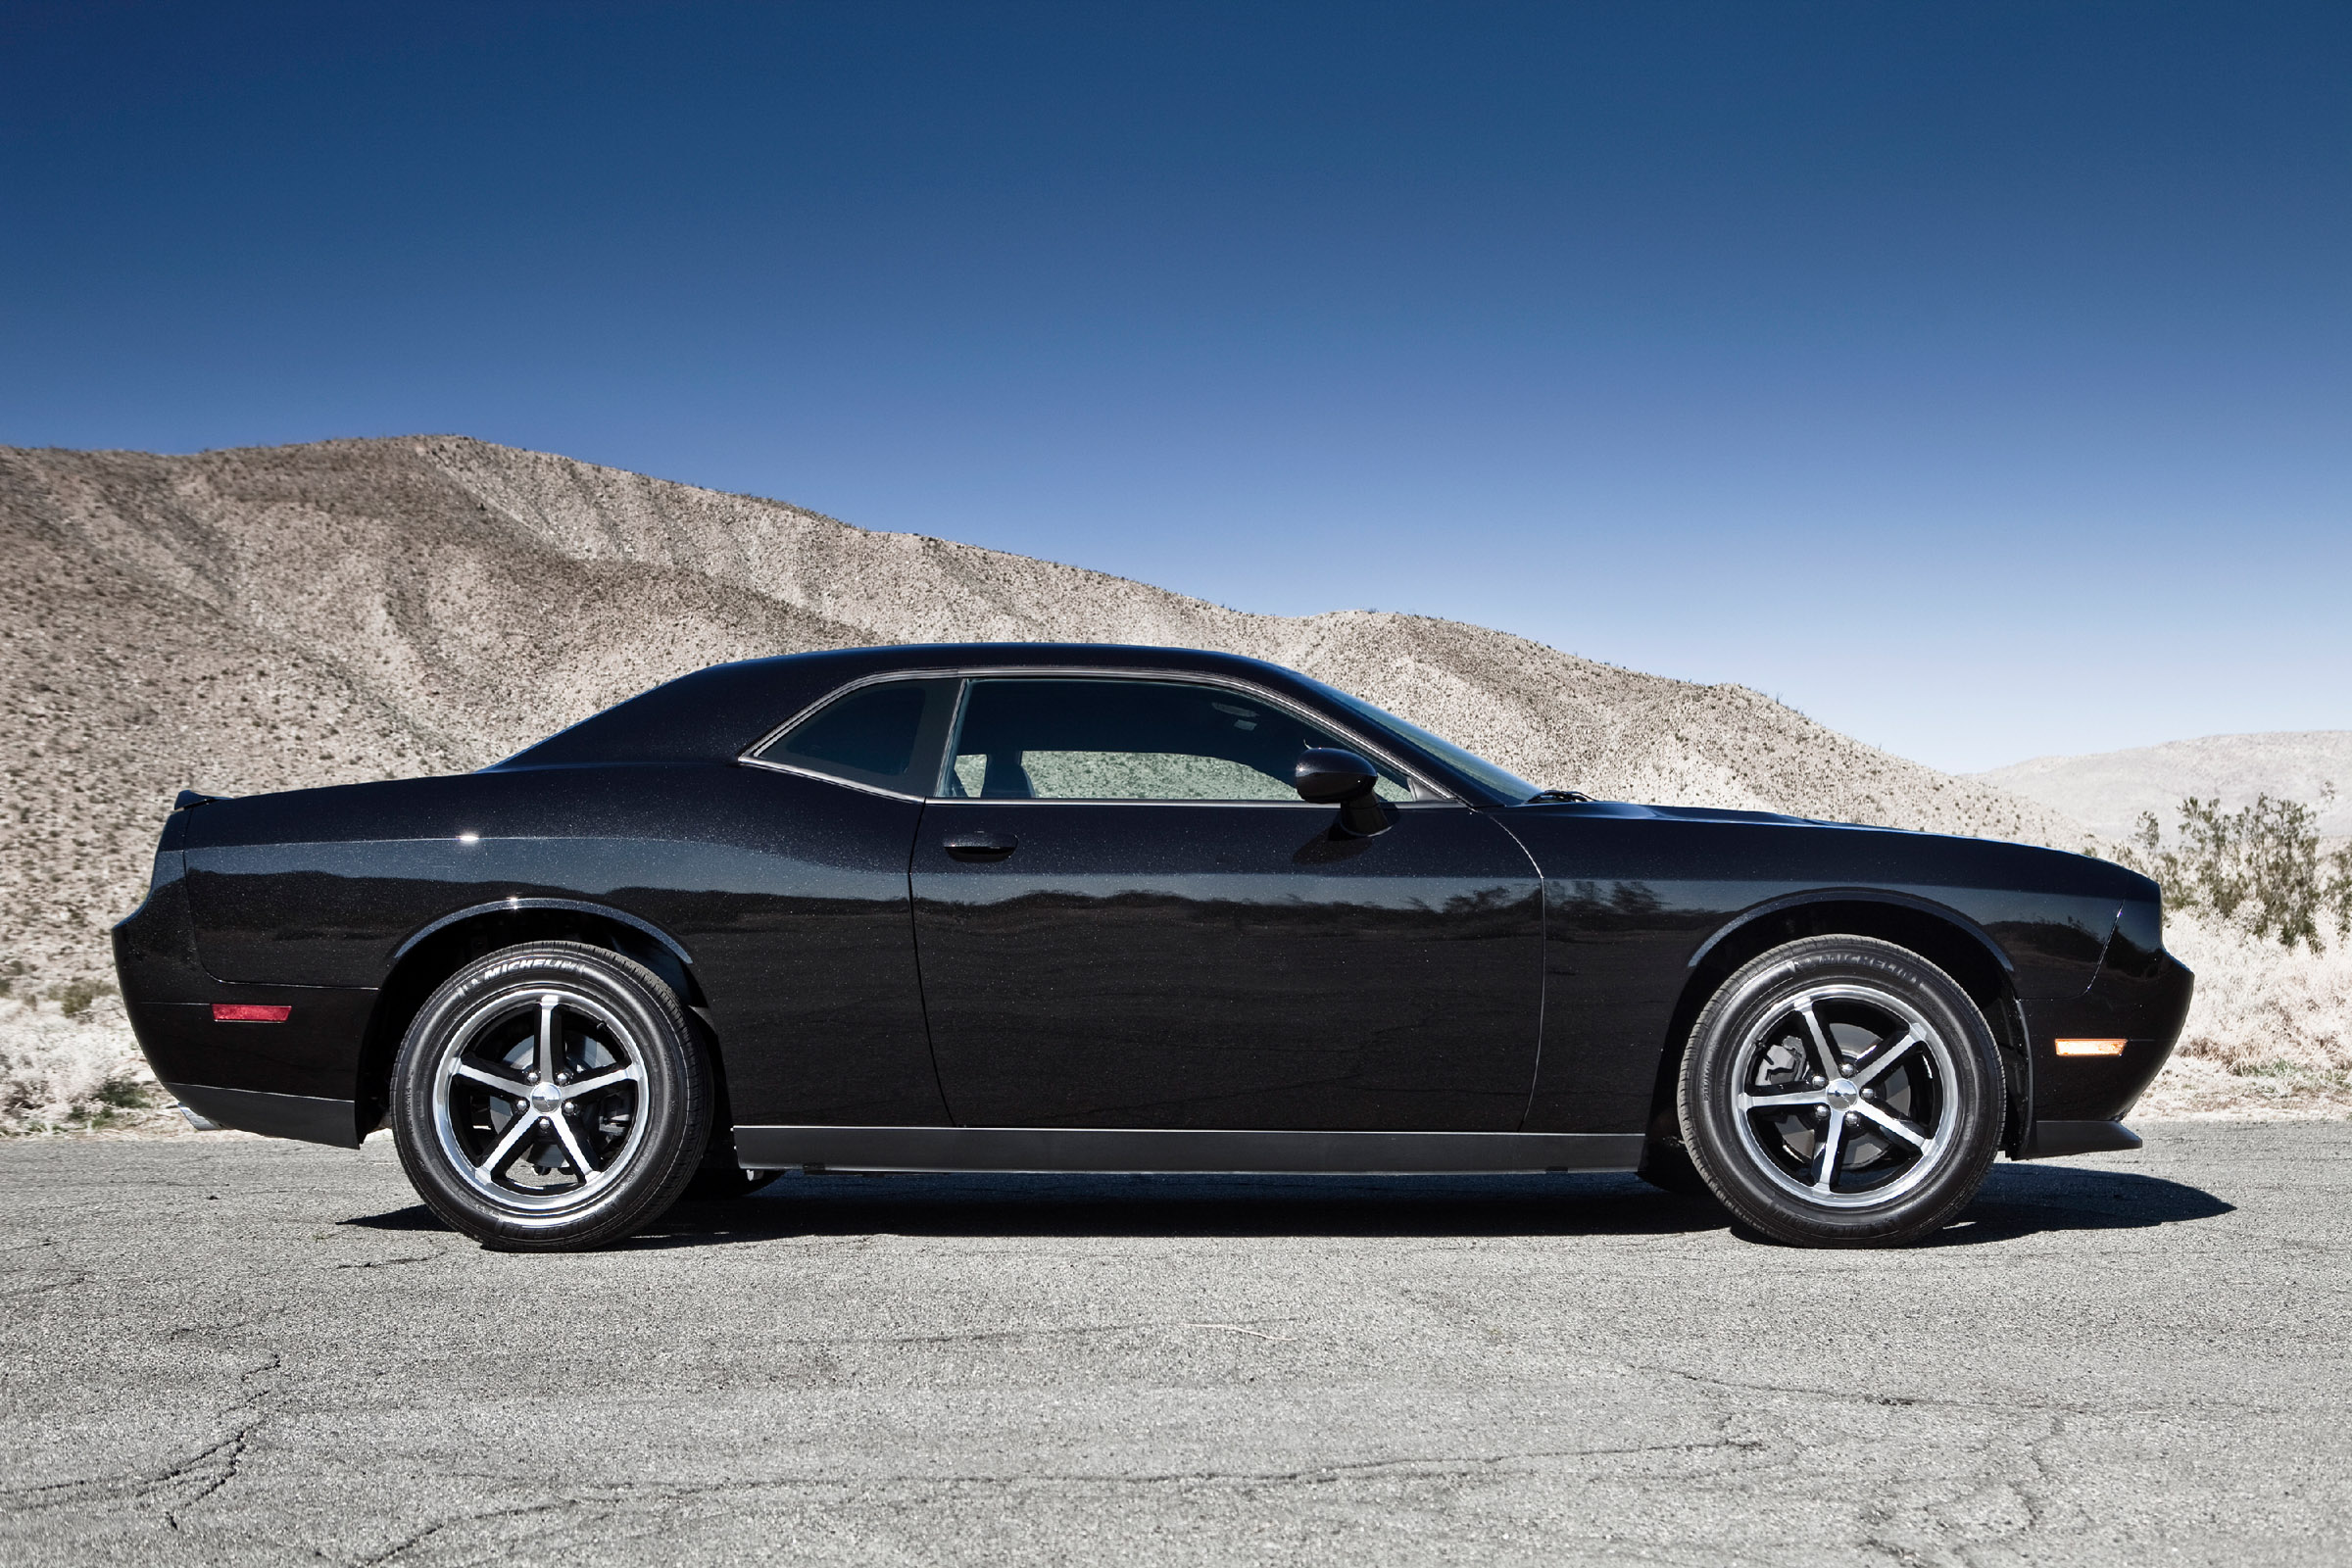 2011 Dodge Challenger RT - Picture 59789